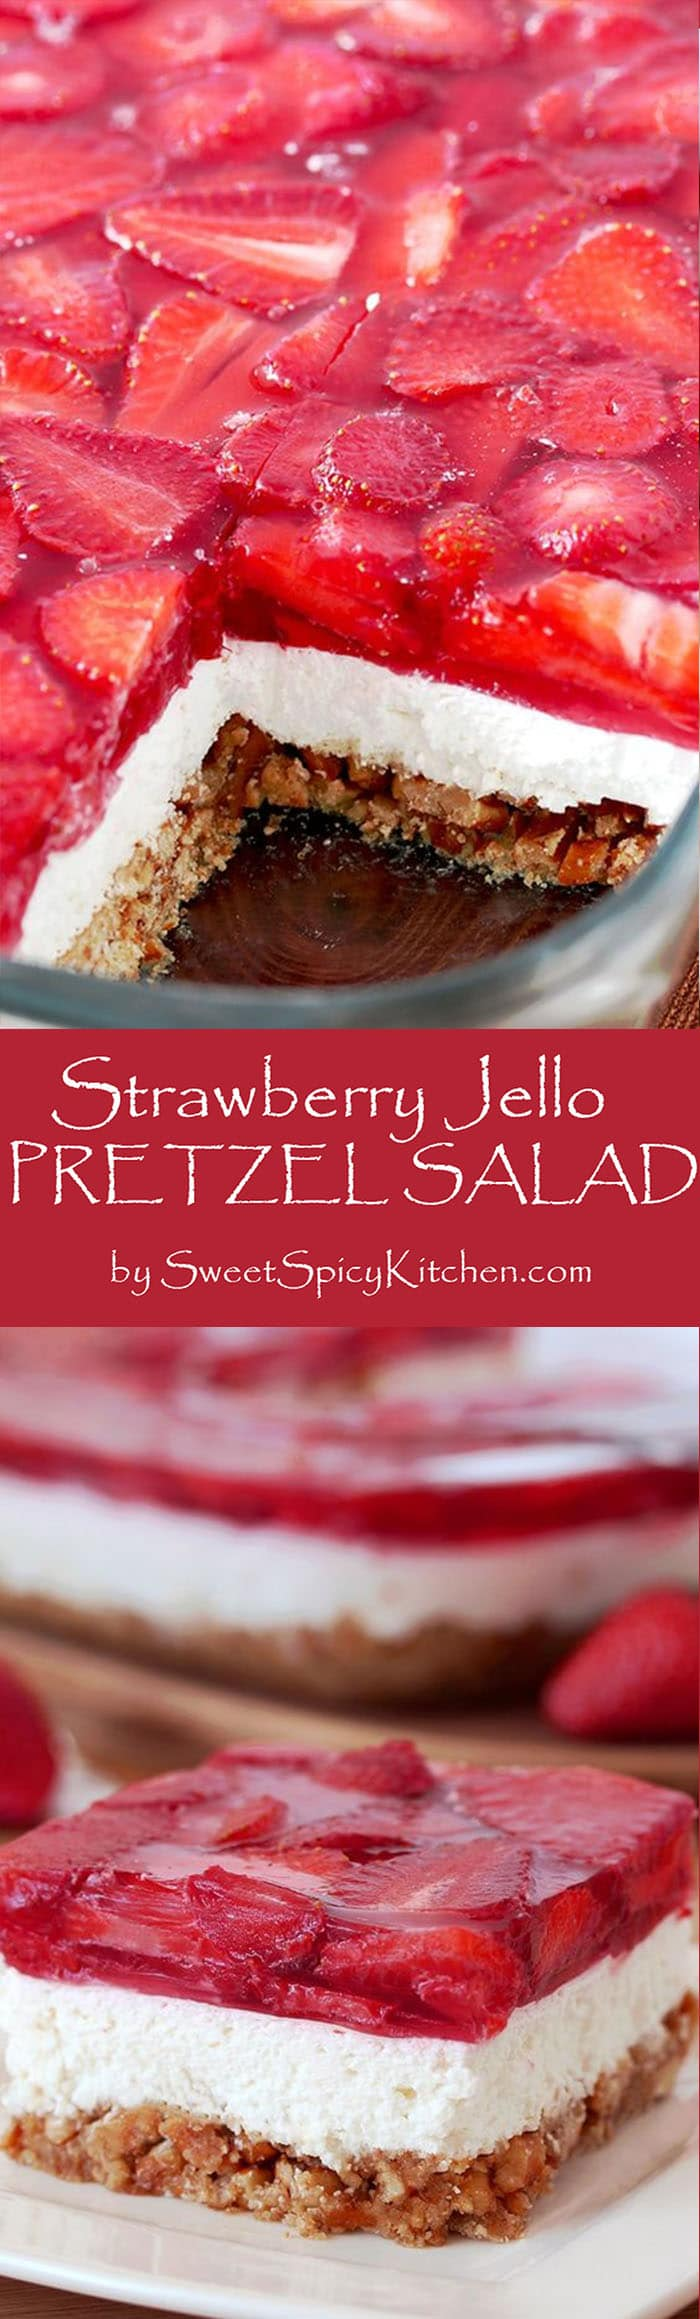 Strawberry Jello Pretzel Salad  is a very tasty, old fashioned dessert that is so easy to prepare and that everyone loves.  It consists of three different layers. The first one is made of crushed pretzels, sugar and melted butter and it´s baked for 10 minutes. Then, the second layer made of cream cheese, sugar and cool whip comes. For the third layer you will need strawberries, strawberry jello and water.